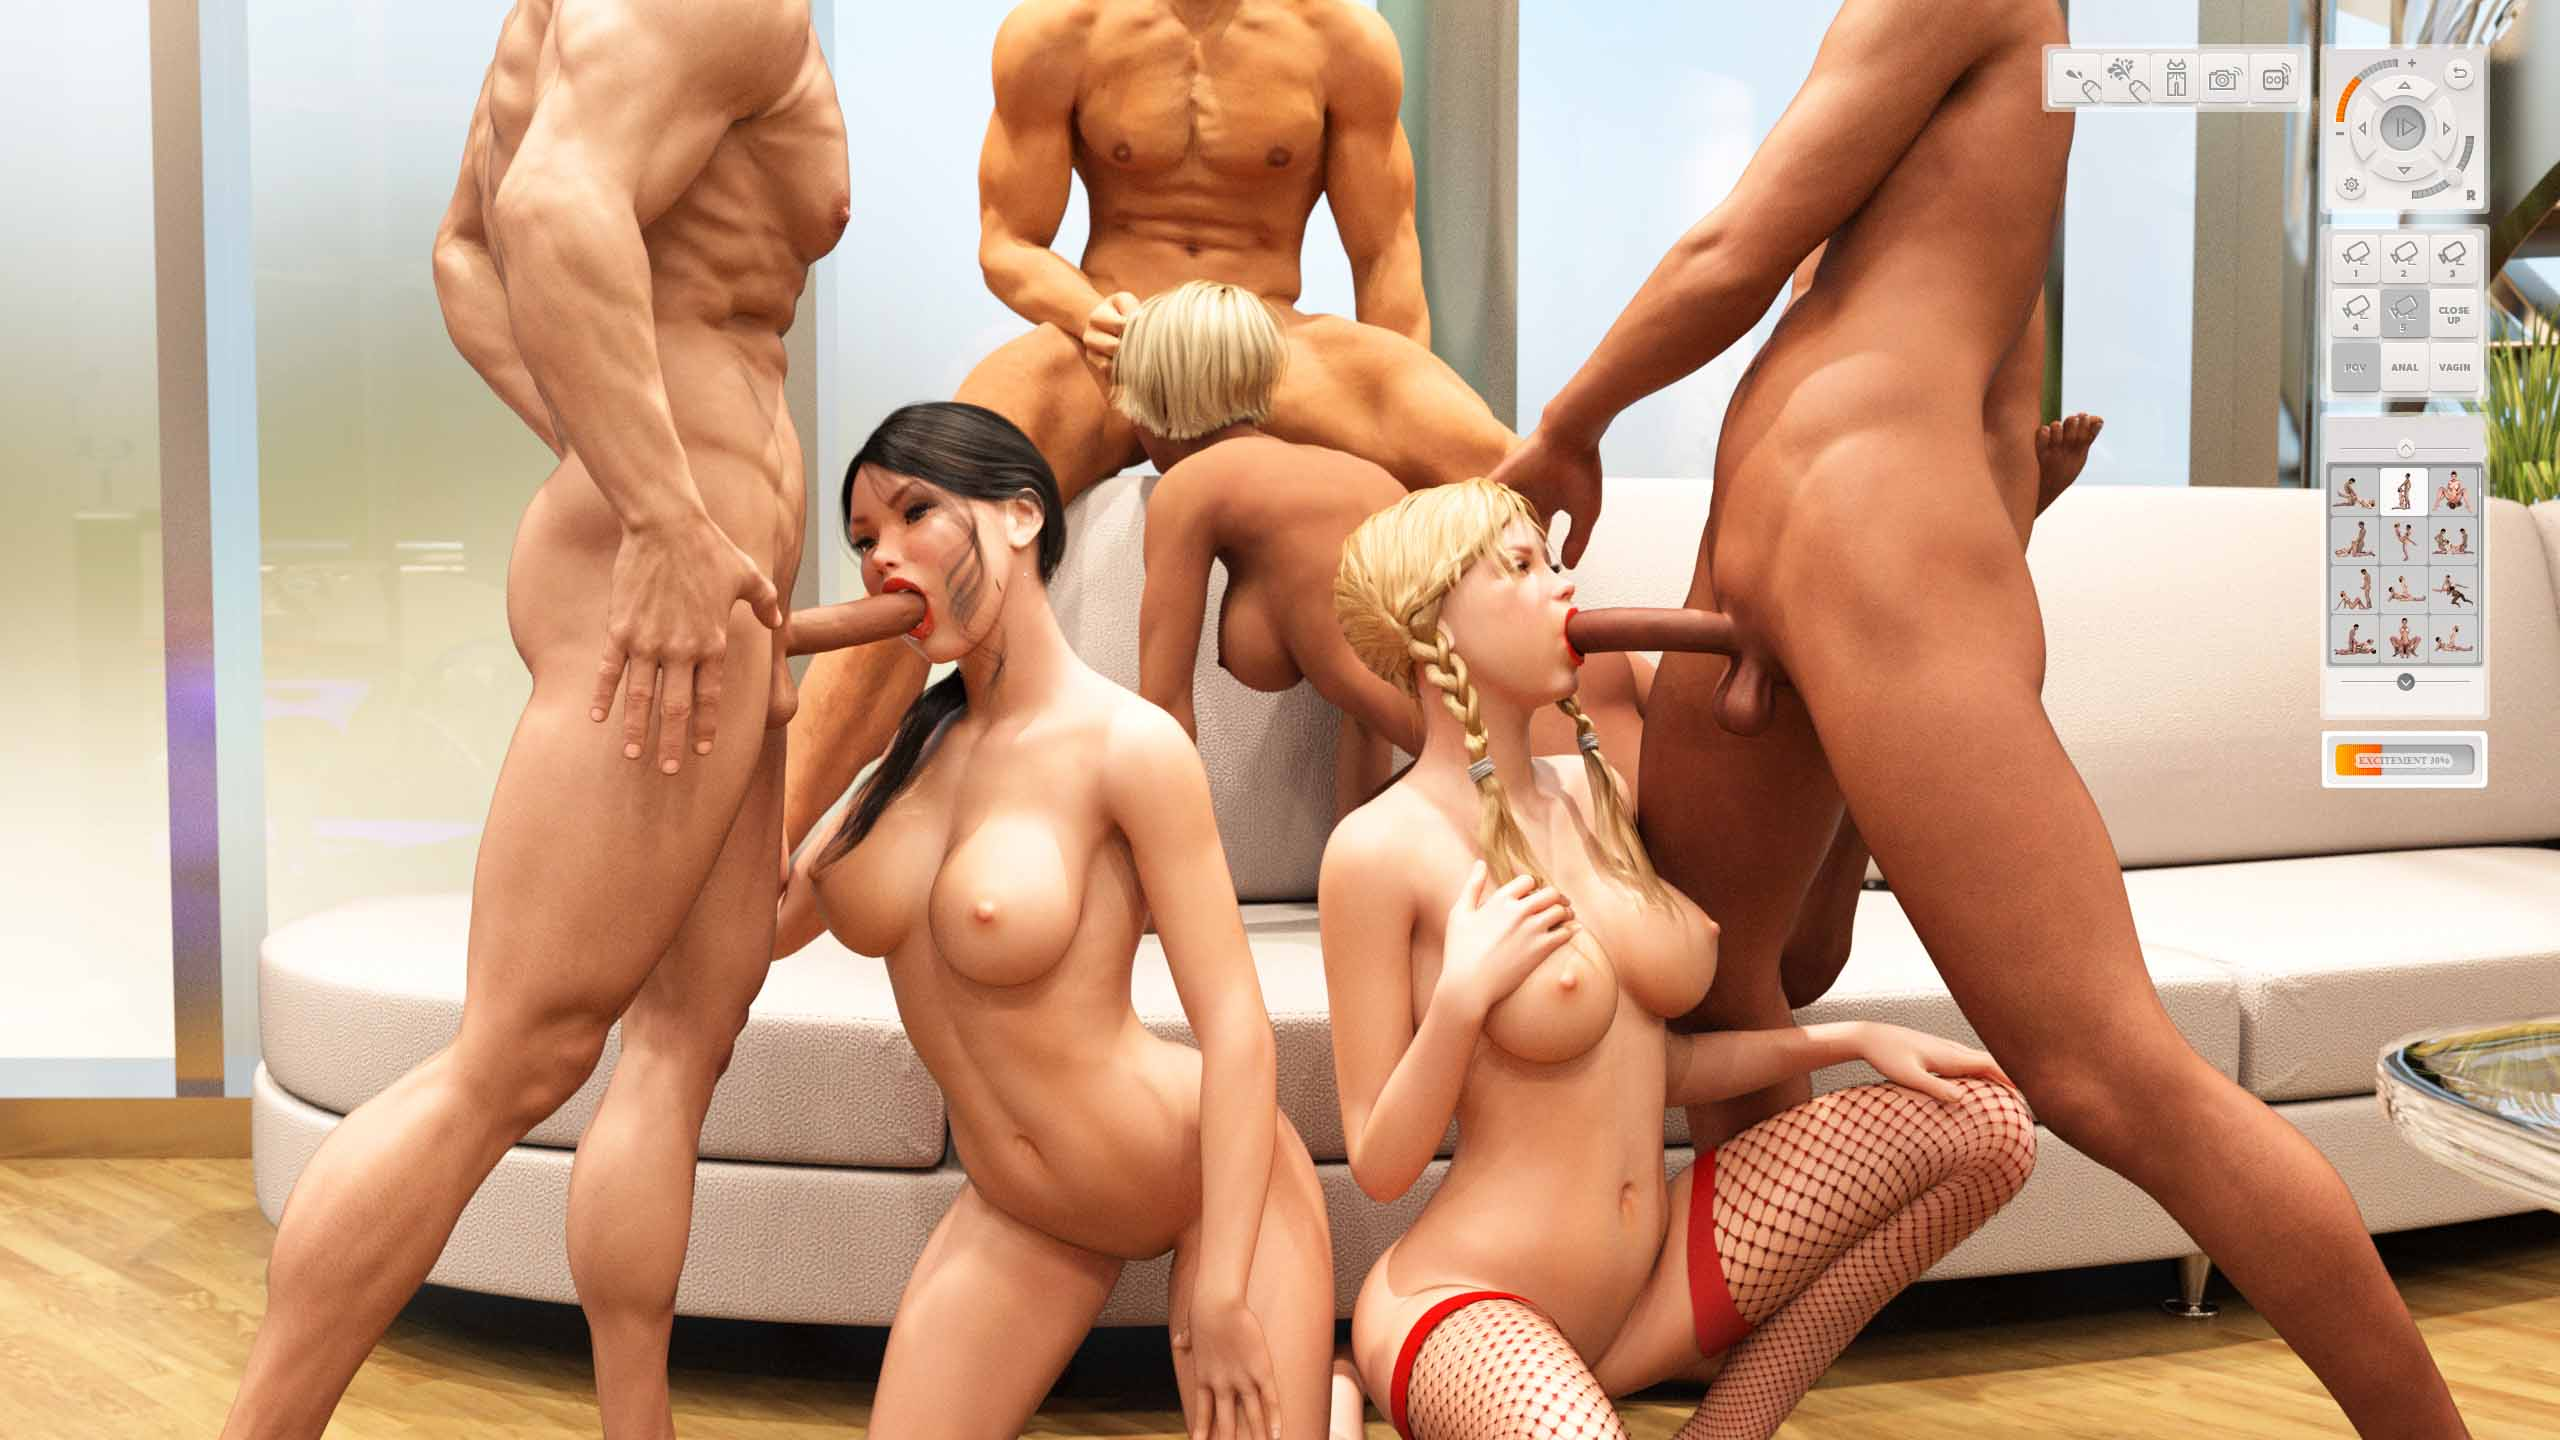 Download 3d sex games for free sex photos